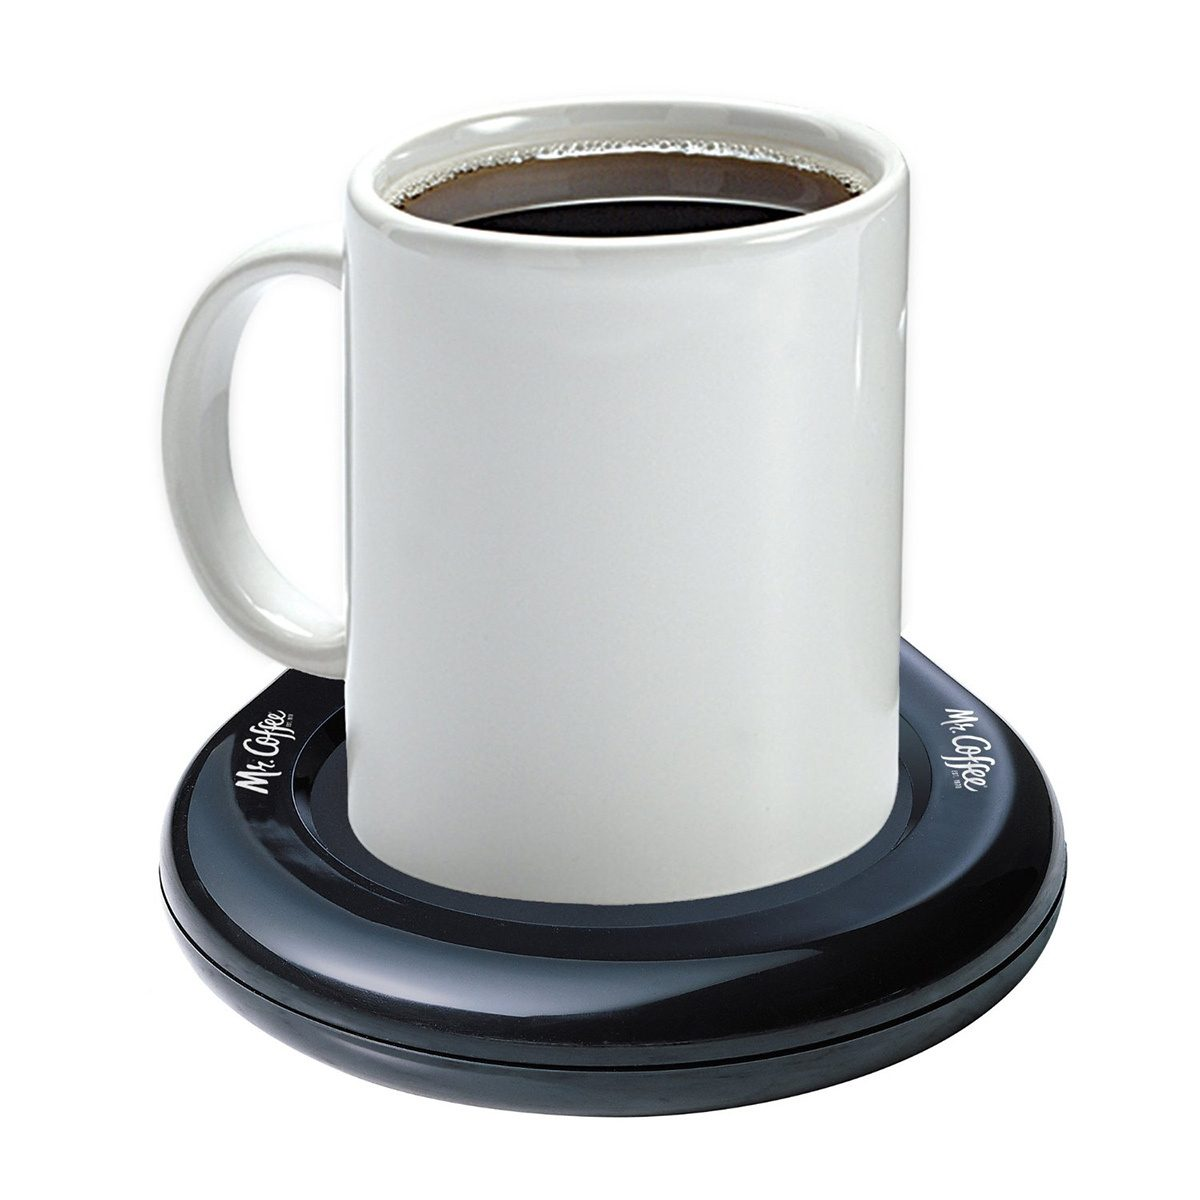 Use Your USB Charger to Heat a Cup of Coffee